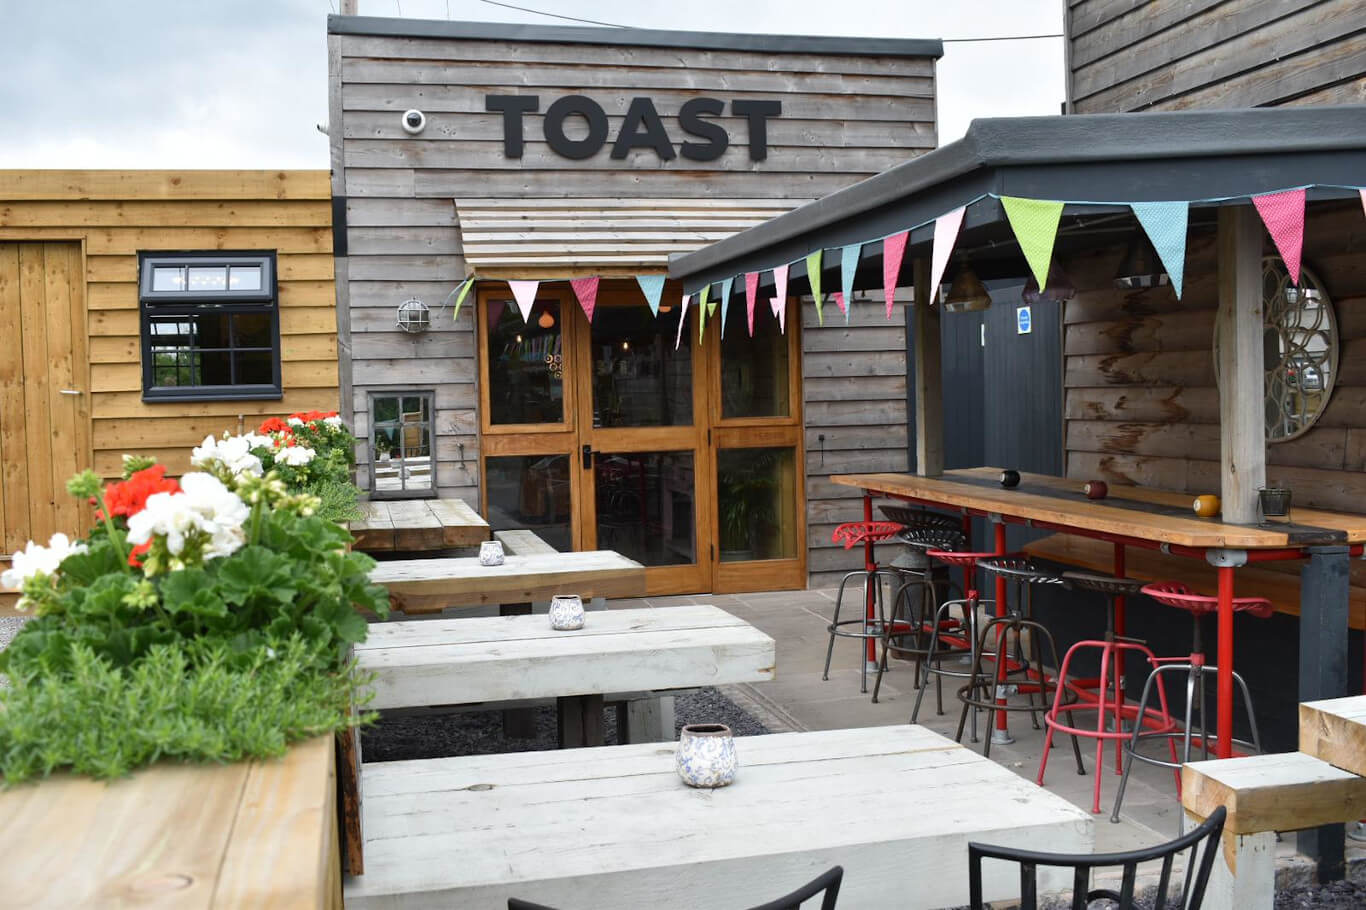 TOAST outdoor seating area